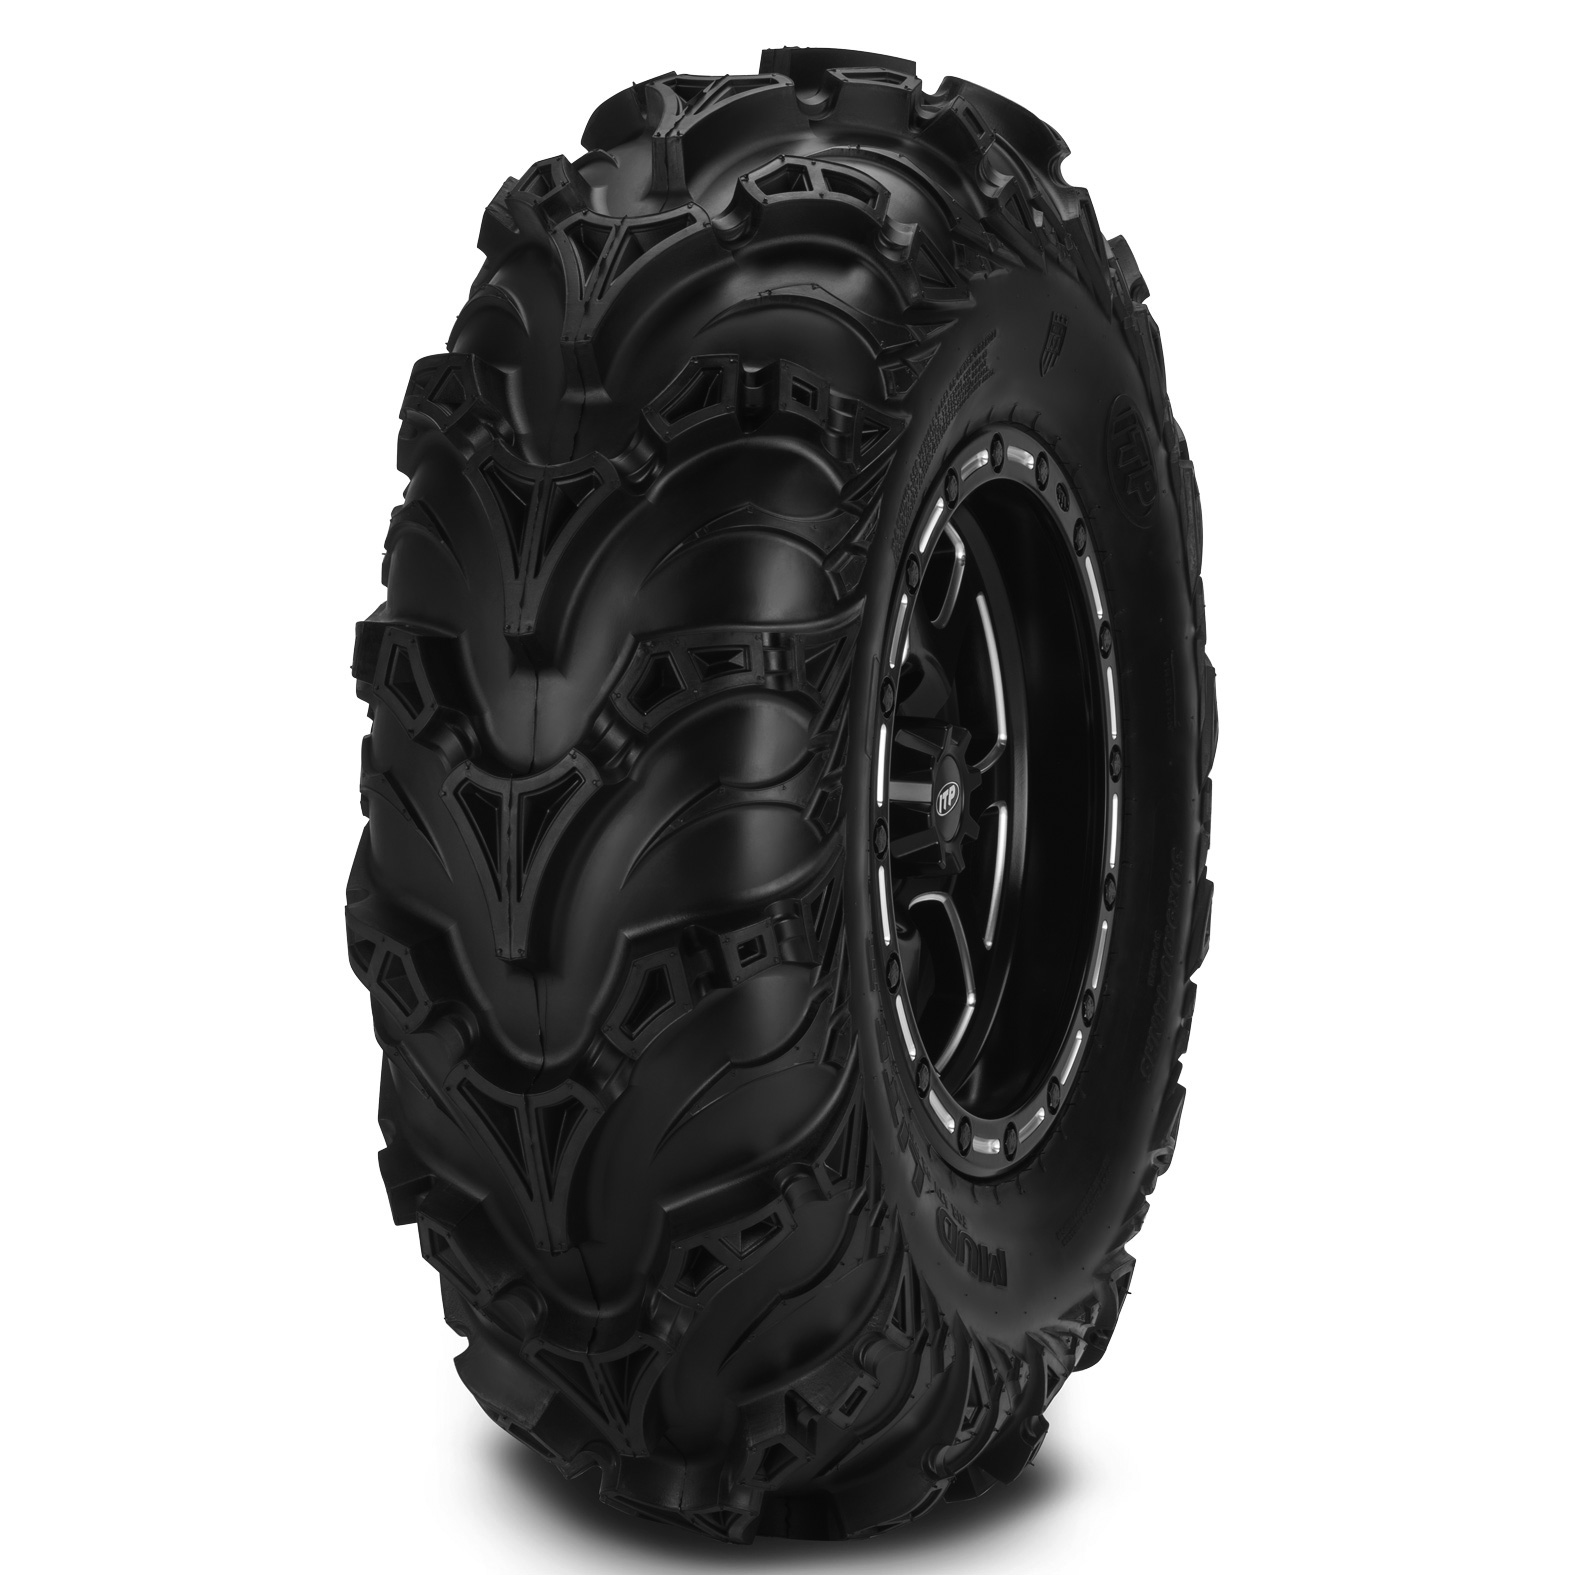 ITP Mud Lite II ATV Tire - Angle